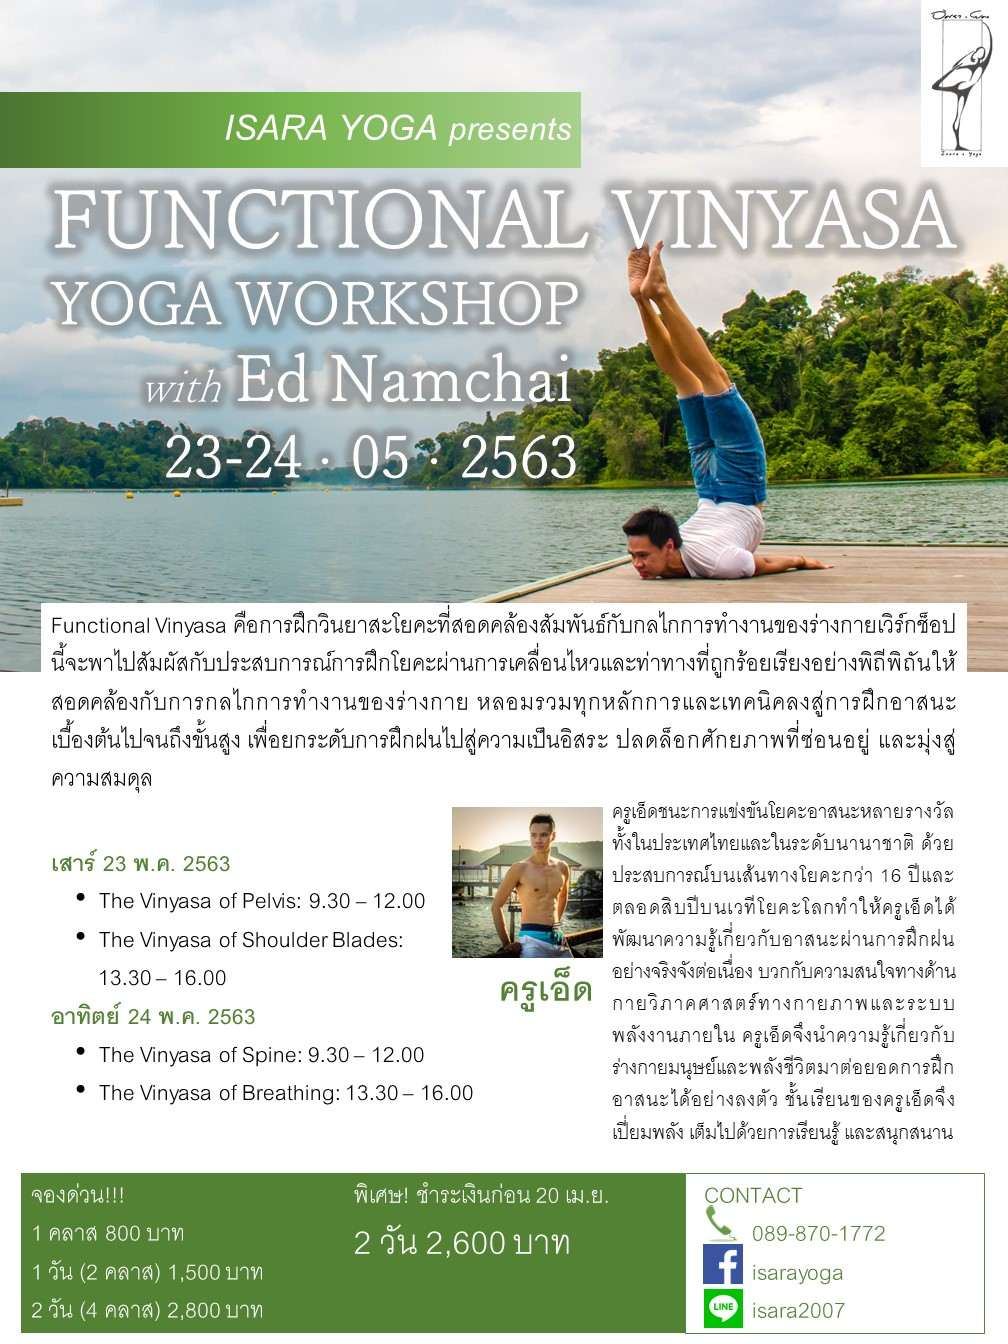 Functional Vinyasa Yoga Workshop with Ed Namchai